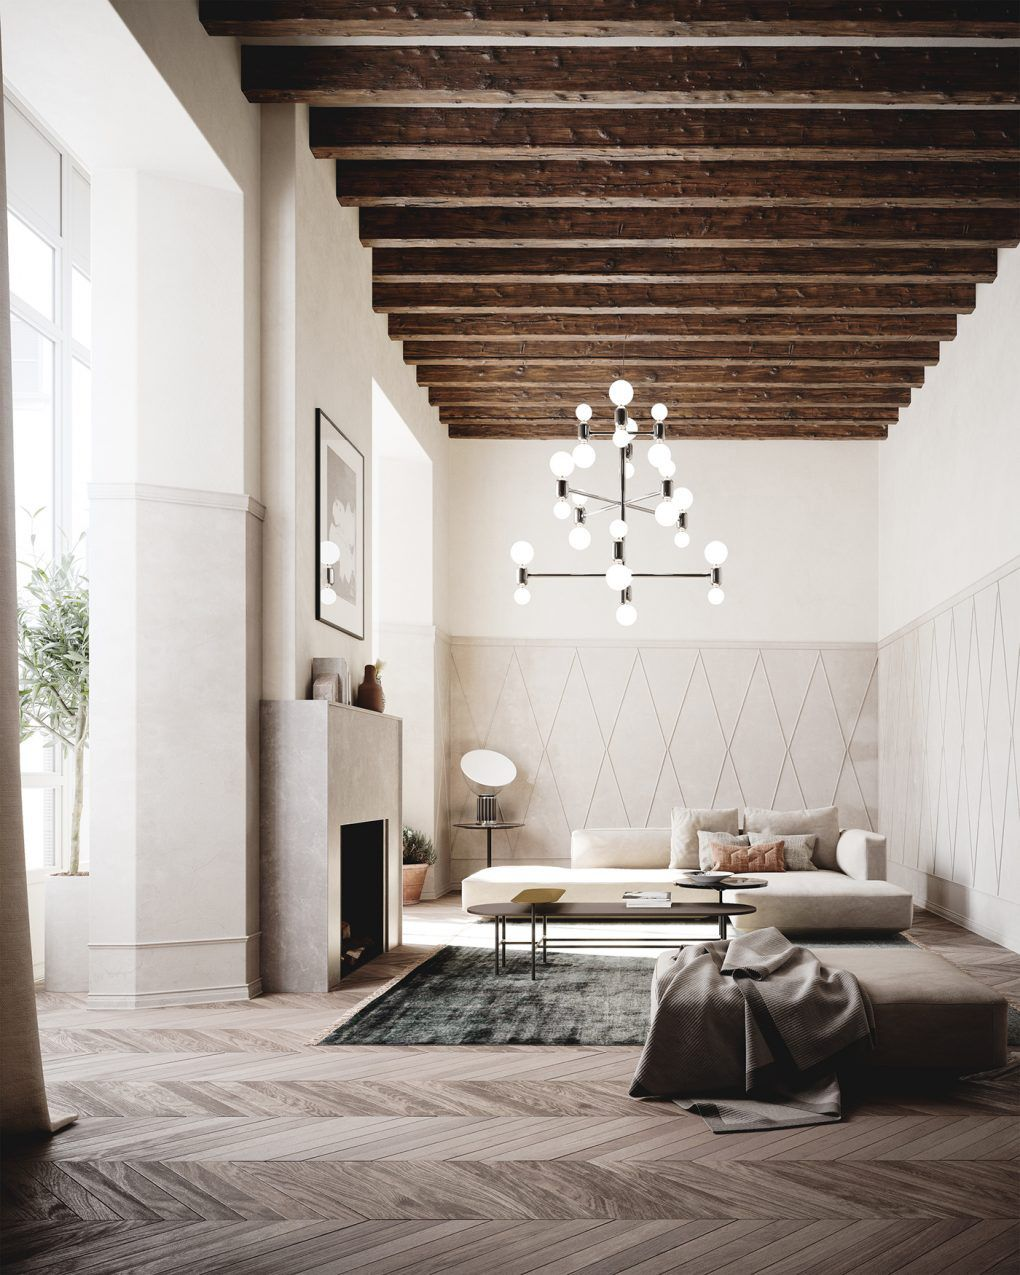 A HighlyCurated Interior Where Scandinavian Functionalism And